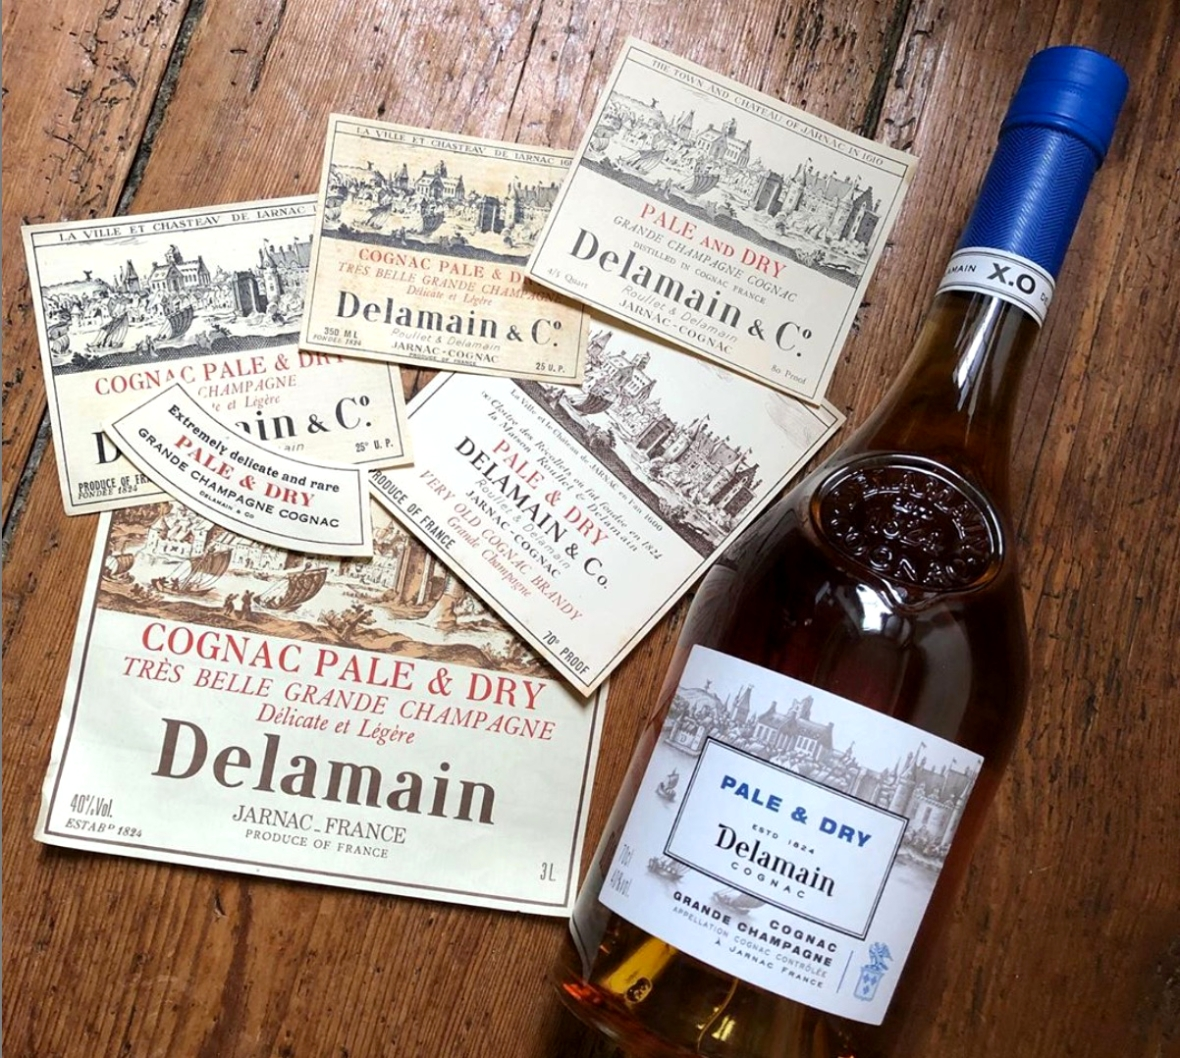 Pale & Dry X.O., Maison Delamain, world cognac day